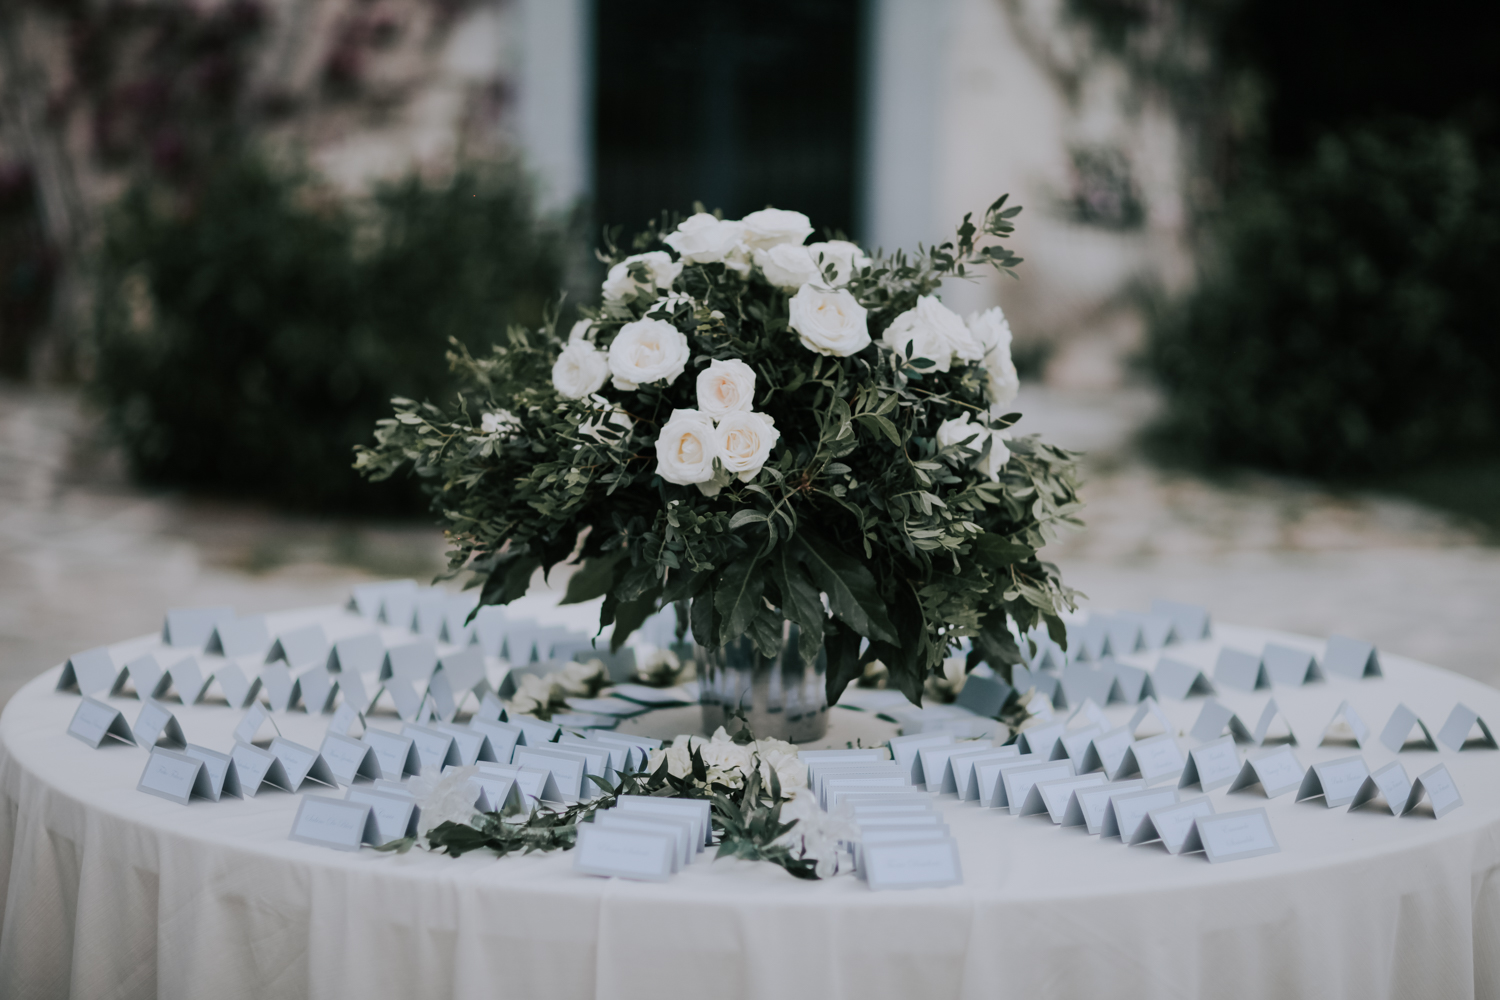 https://www.weddingamalfi.com/wp-content/uploads/Alessandro-and-Diego-paper-place-cards.jpg